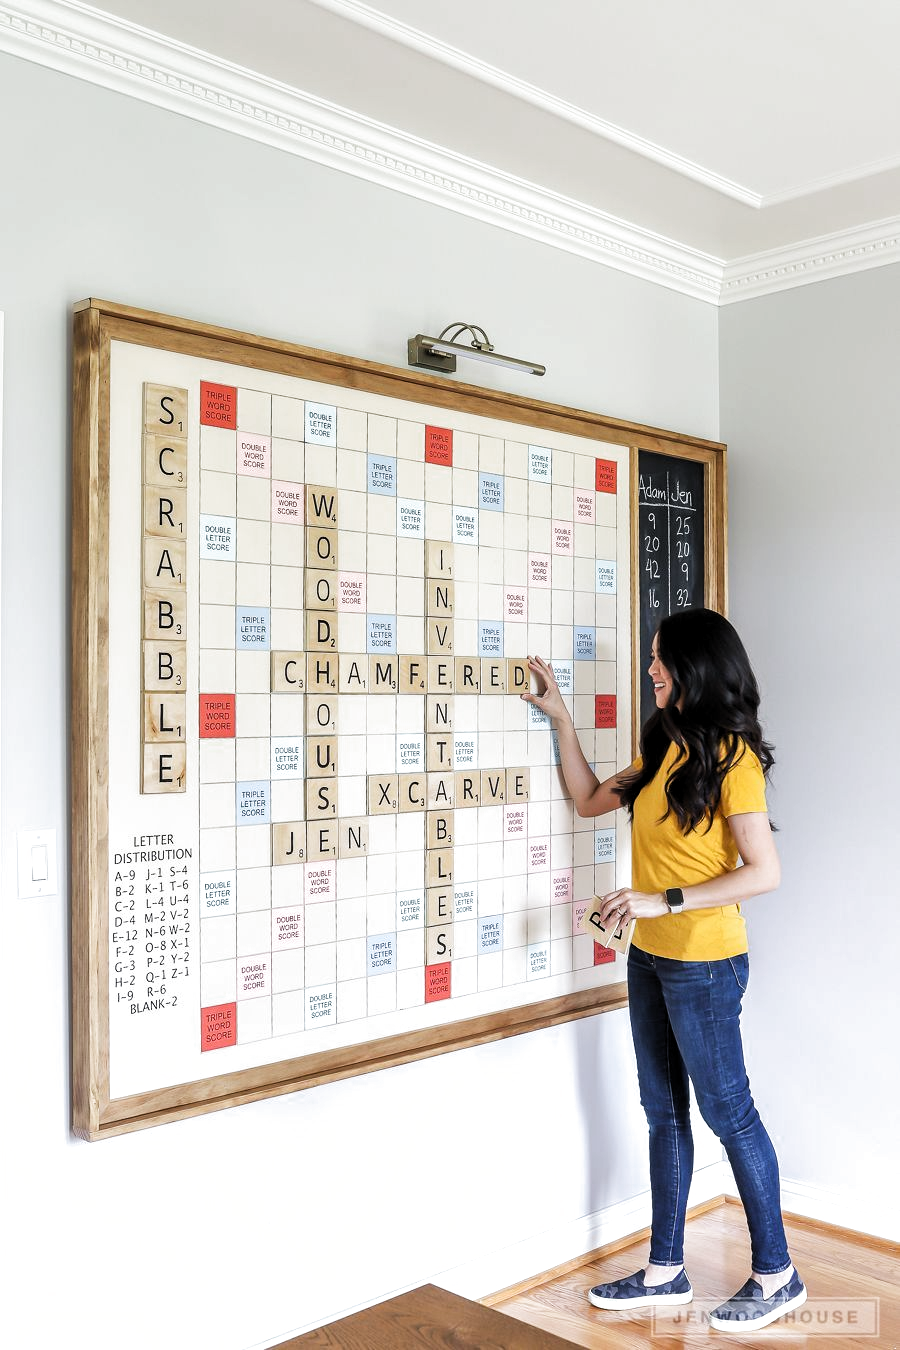 Woodworking Projects Games How To Make A Diy Giant Wall Scrabble Game Woodworking Projects Games How To Make A Diy Giant Wall Scrabble Game Scrabble Diy Wall